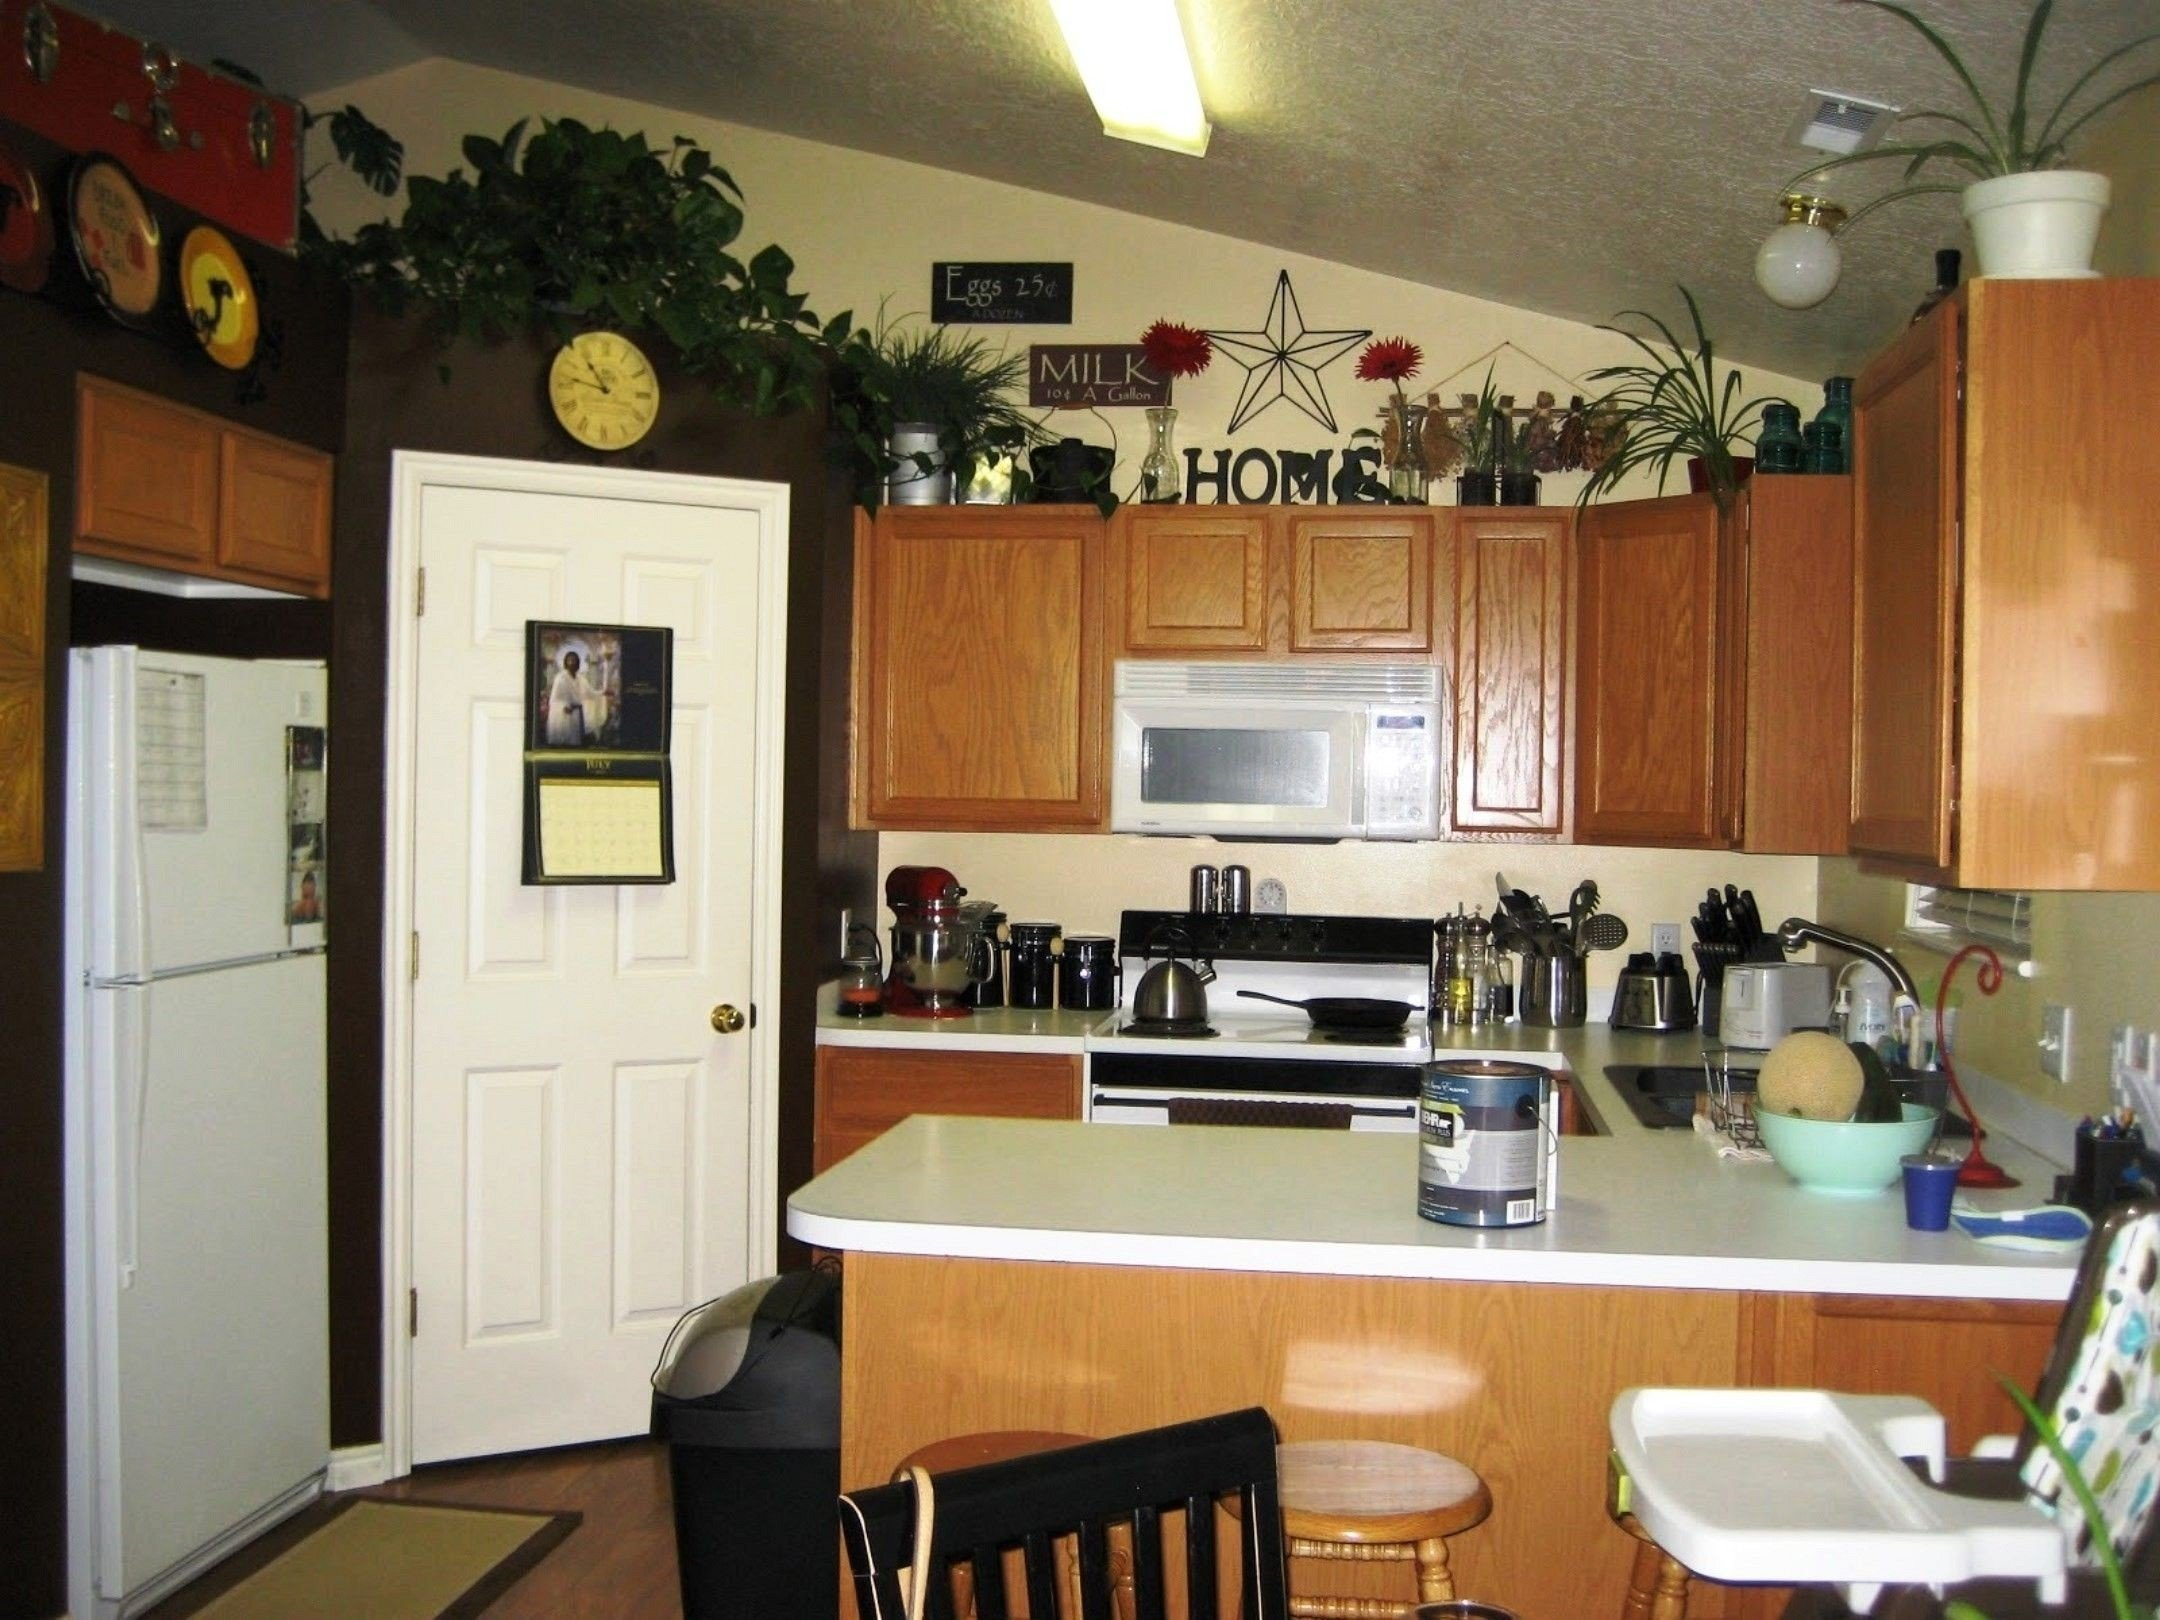 10 Cute Decorating Ideas Above Kitchen Cabinets above kitchen cabinet decorations fresh decorating kitchen cabinets